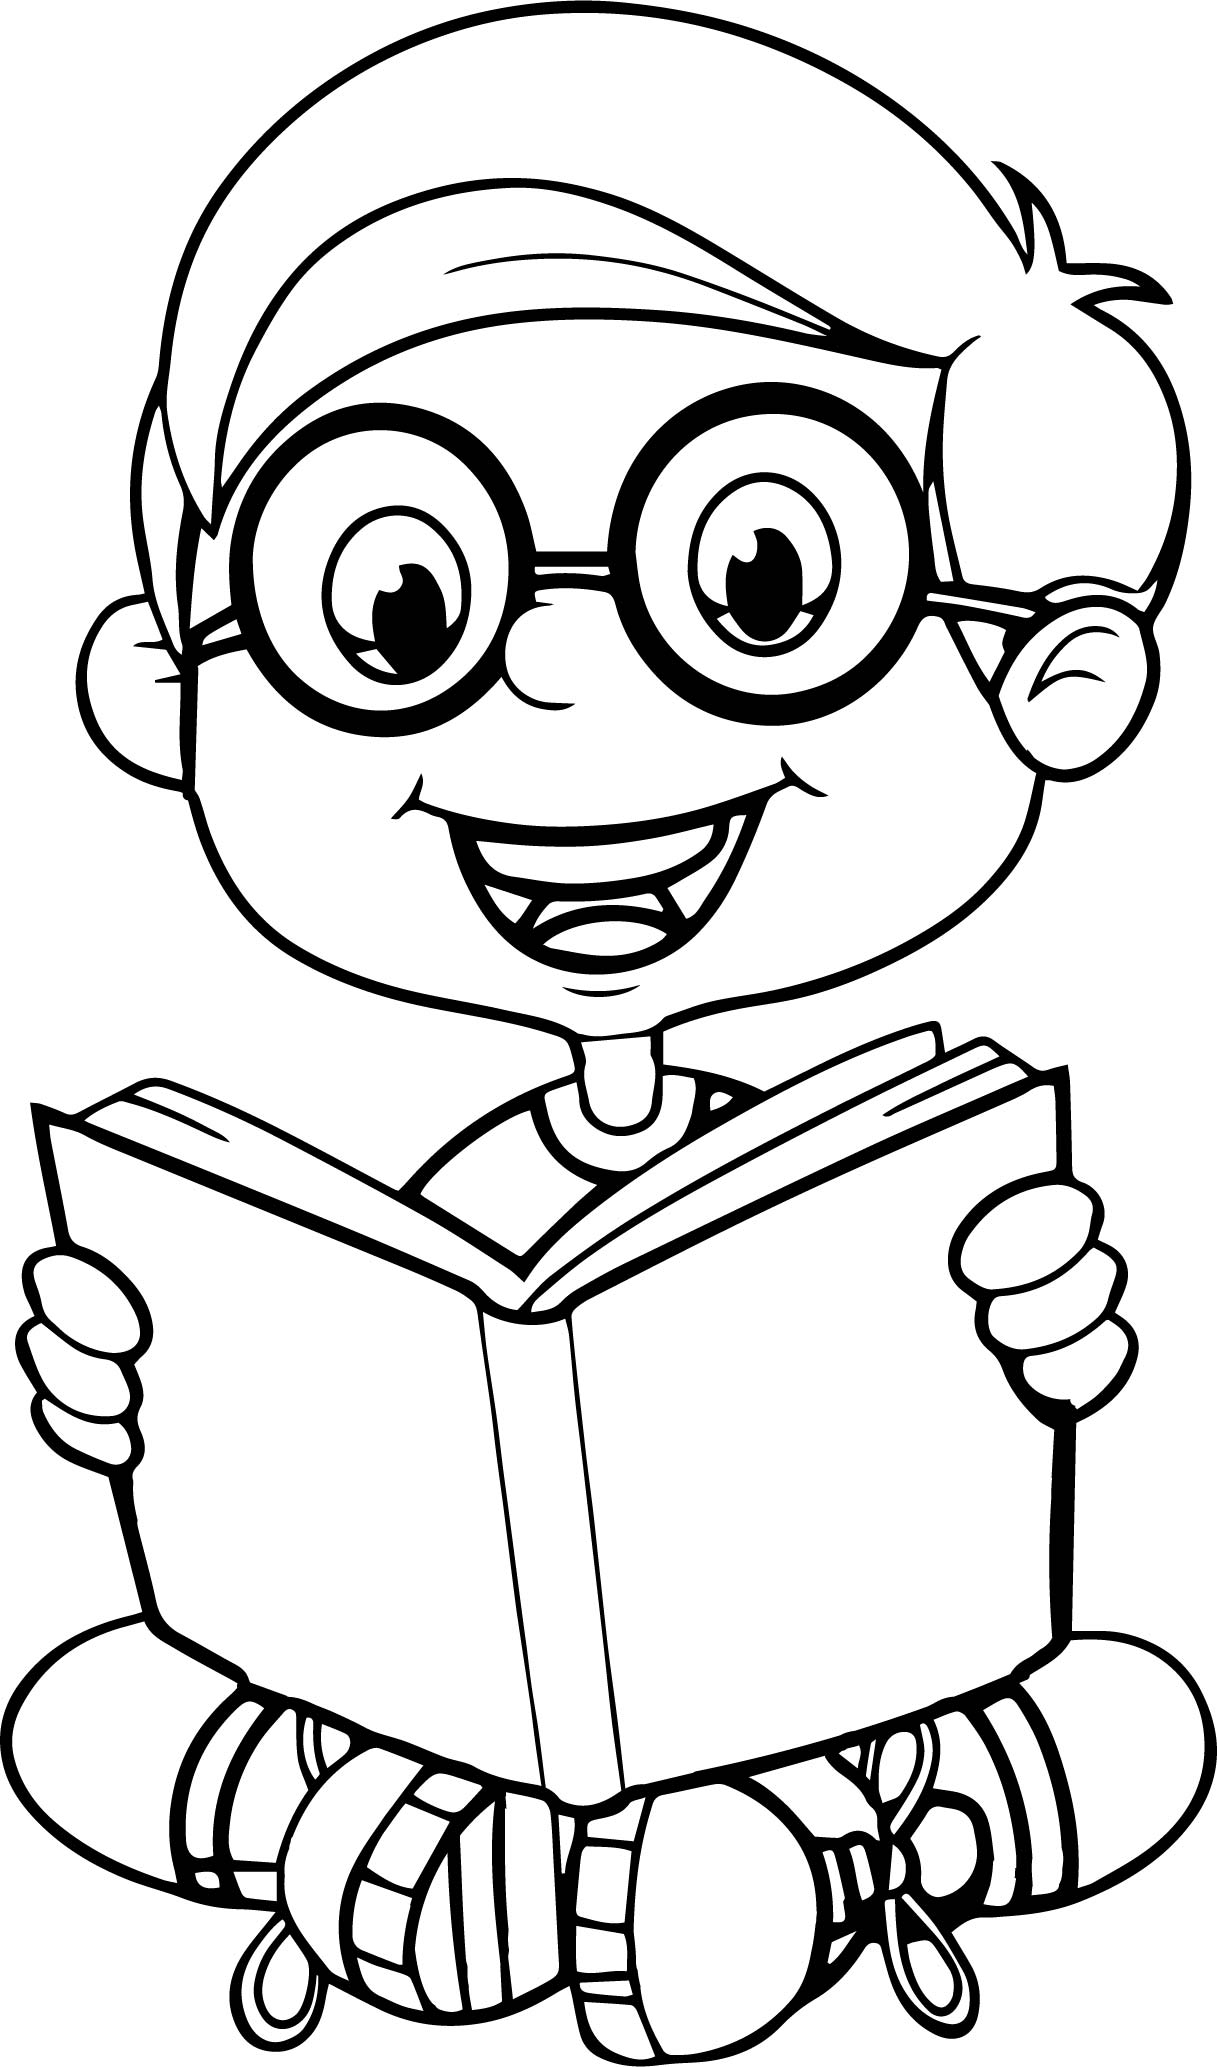 Reading A Book Cute Cartoon Kid Coloring Page Wecoloringpage